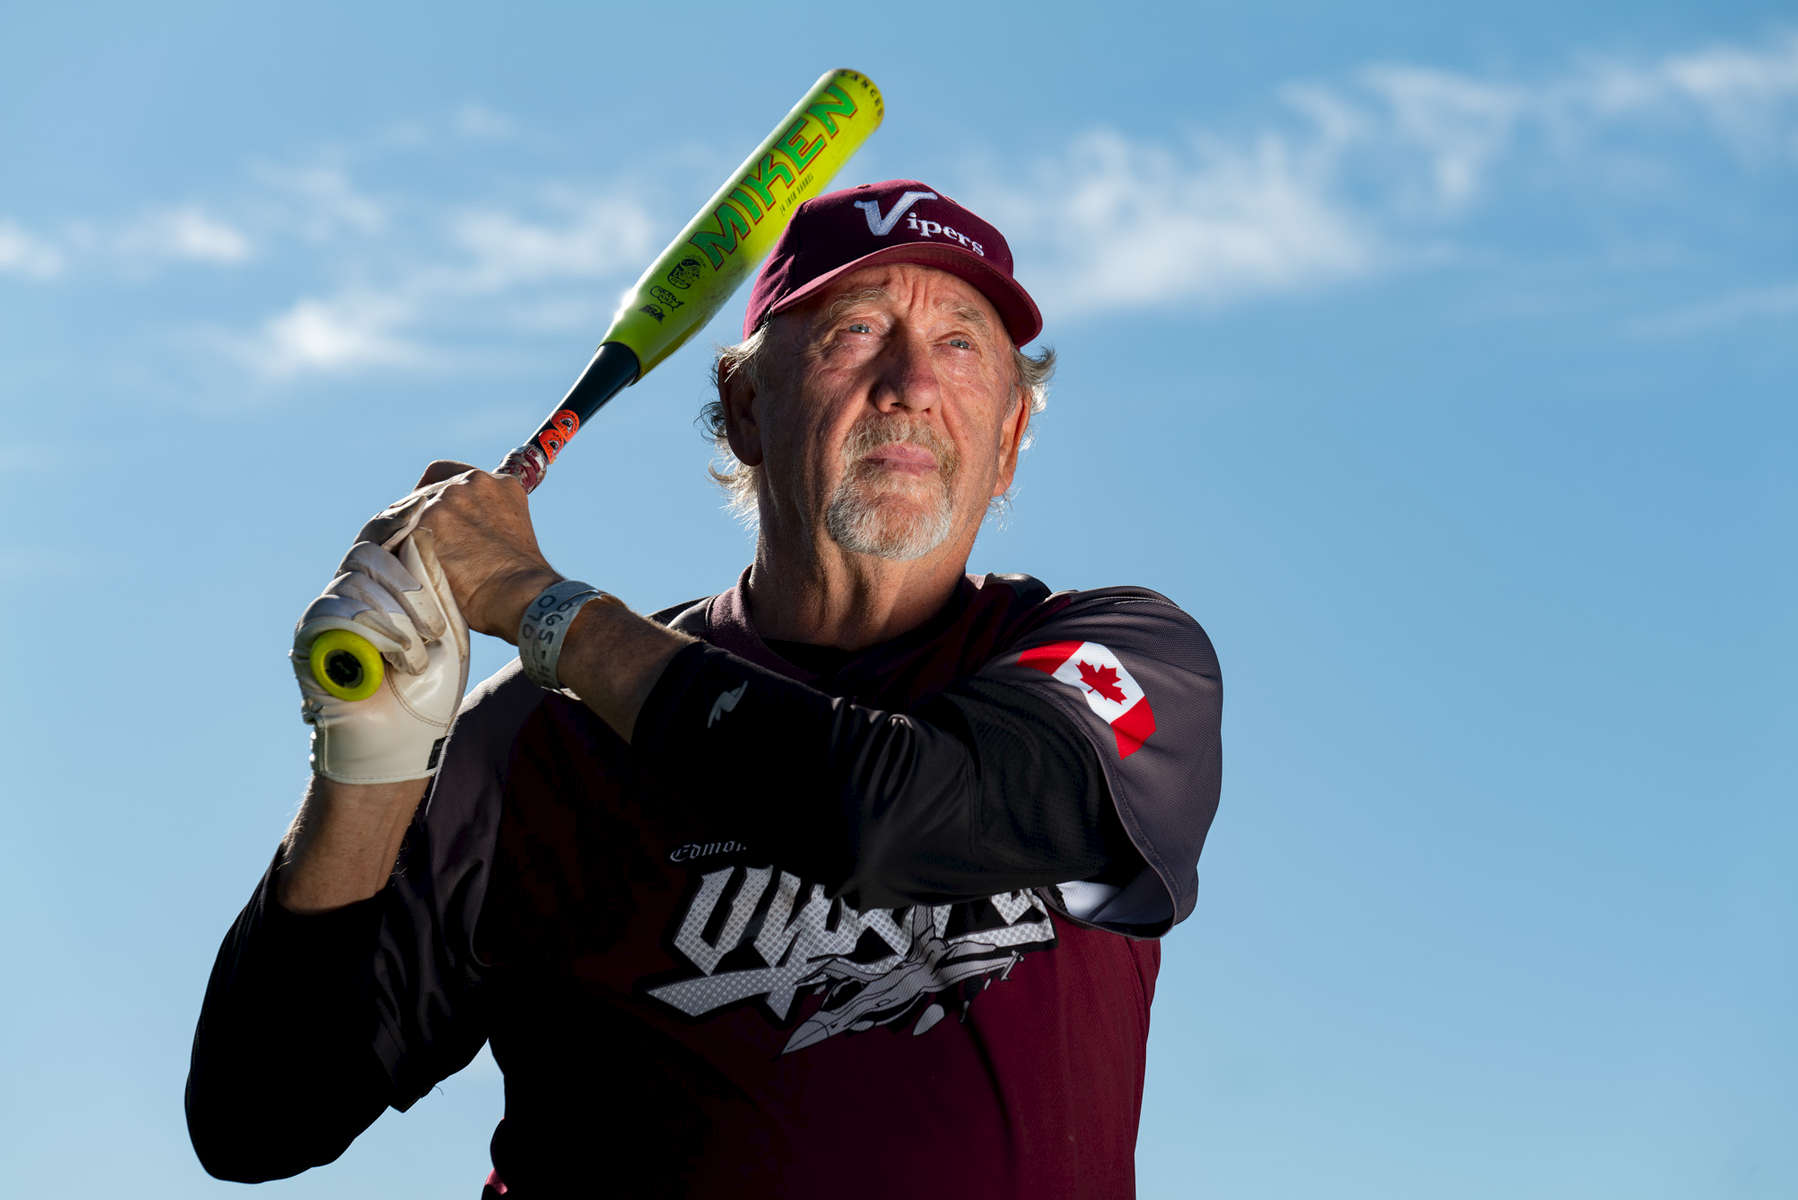 Senior Softball player Mike Loyer aged sixty nine, poses for a portrait during the Huntsman World Senior Games on October 11, 2019 in St. George, Utah.